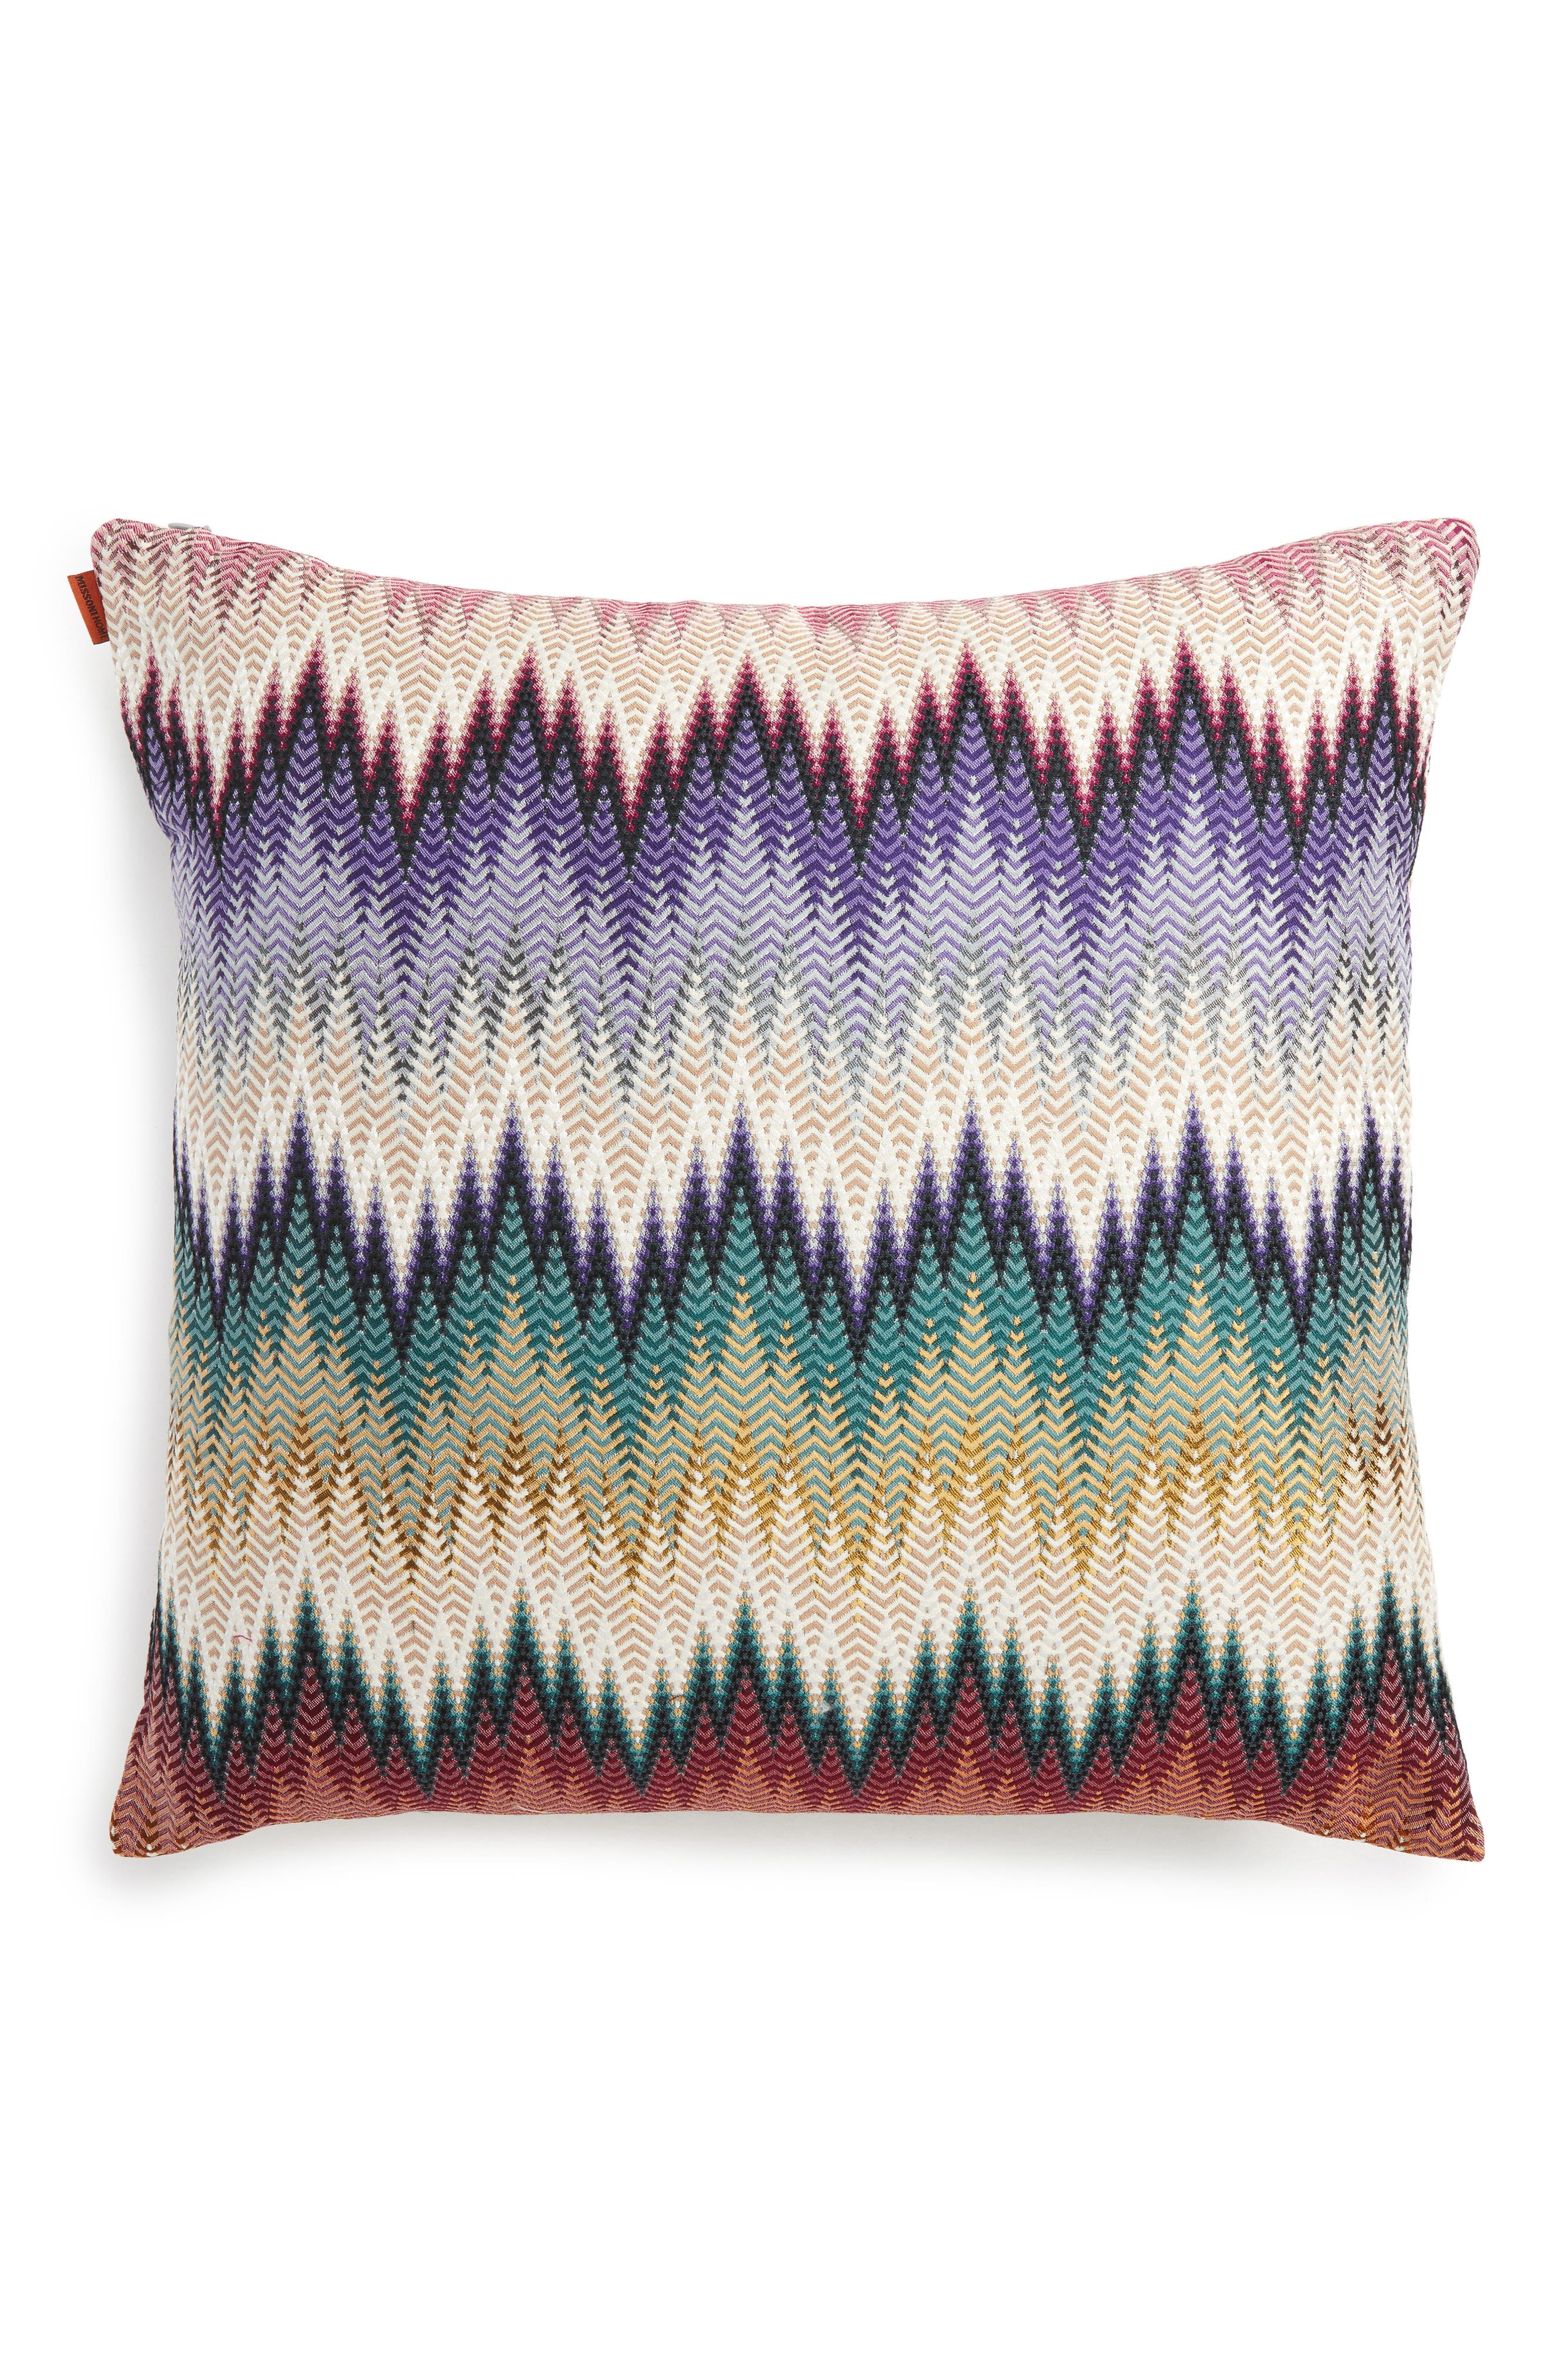 Phrae Accent Pillow,                             Main thumbnail 1, color,                             MULTI COLOR